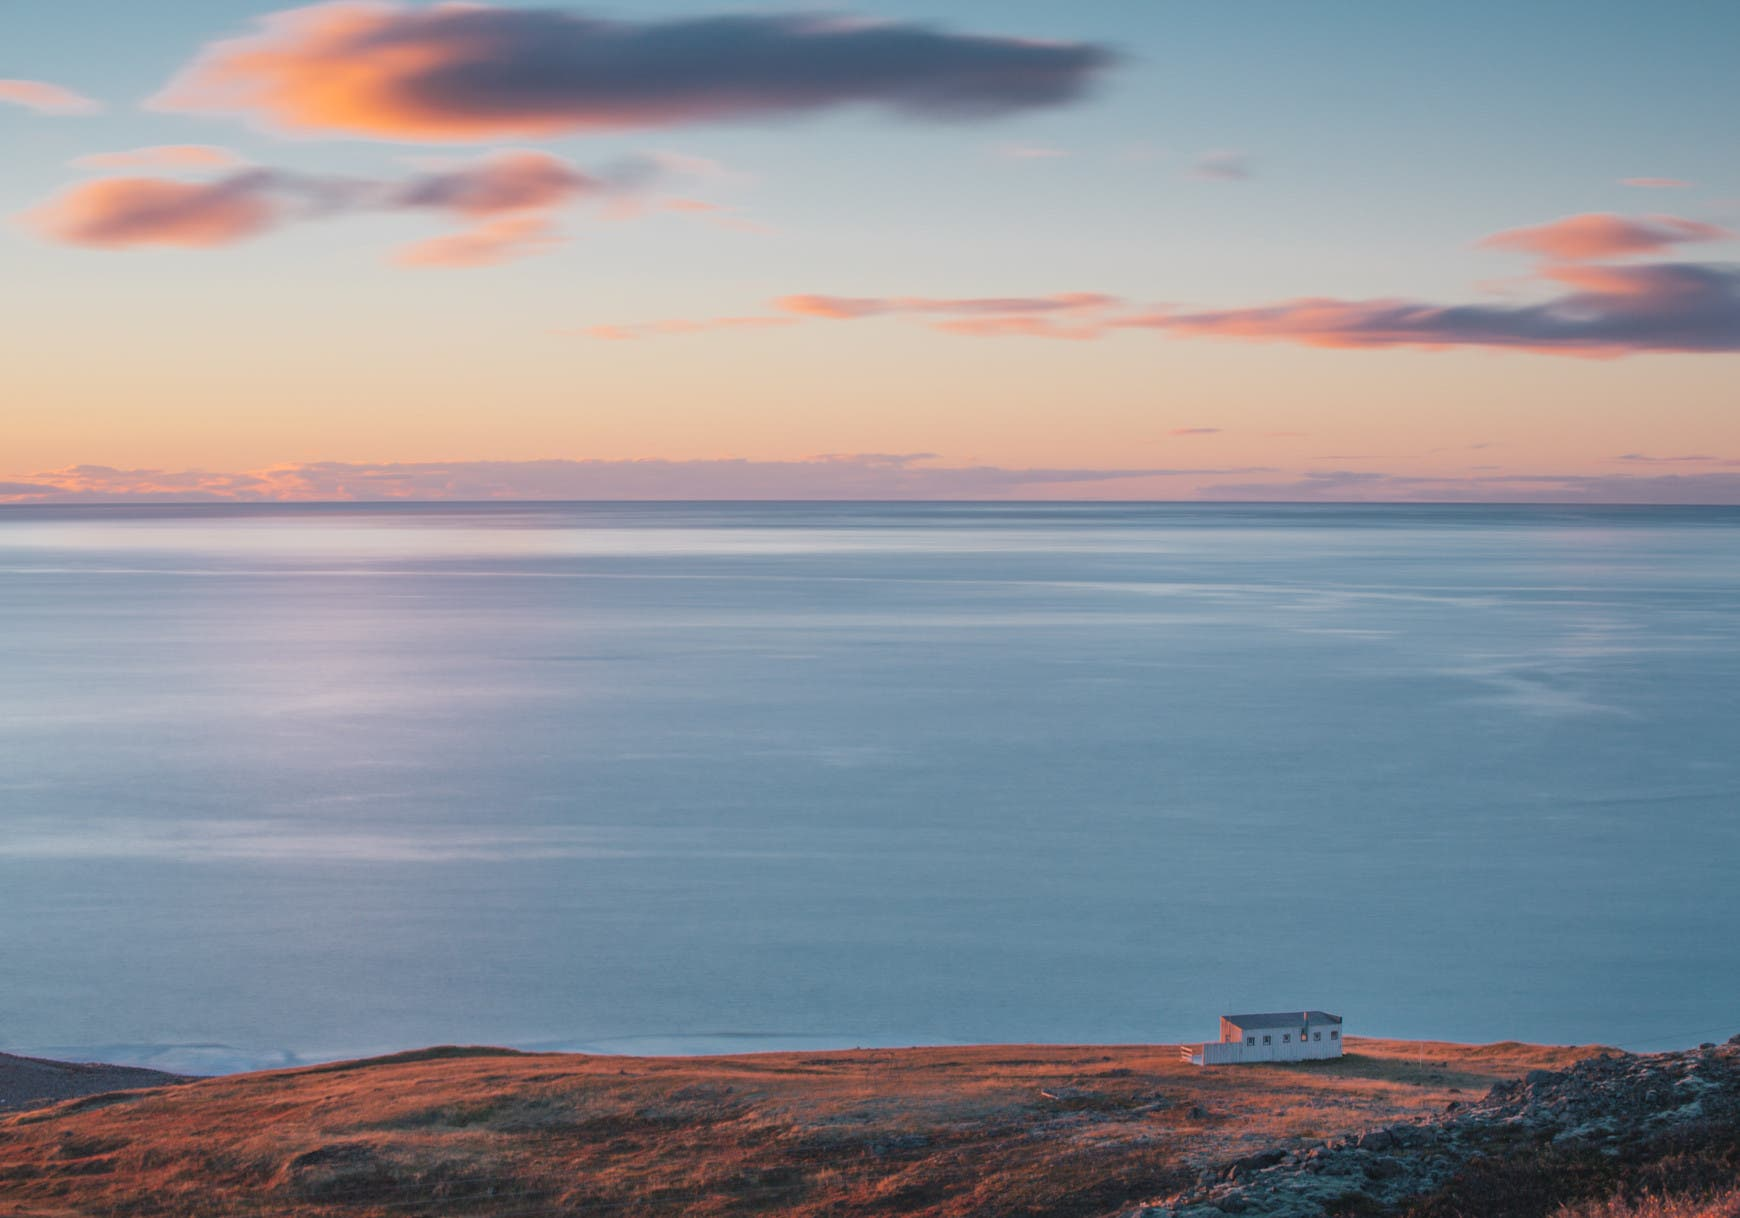 Beginner's Tips: Getting the Most out of Golden Hour Landscape Photography